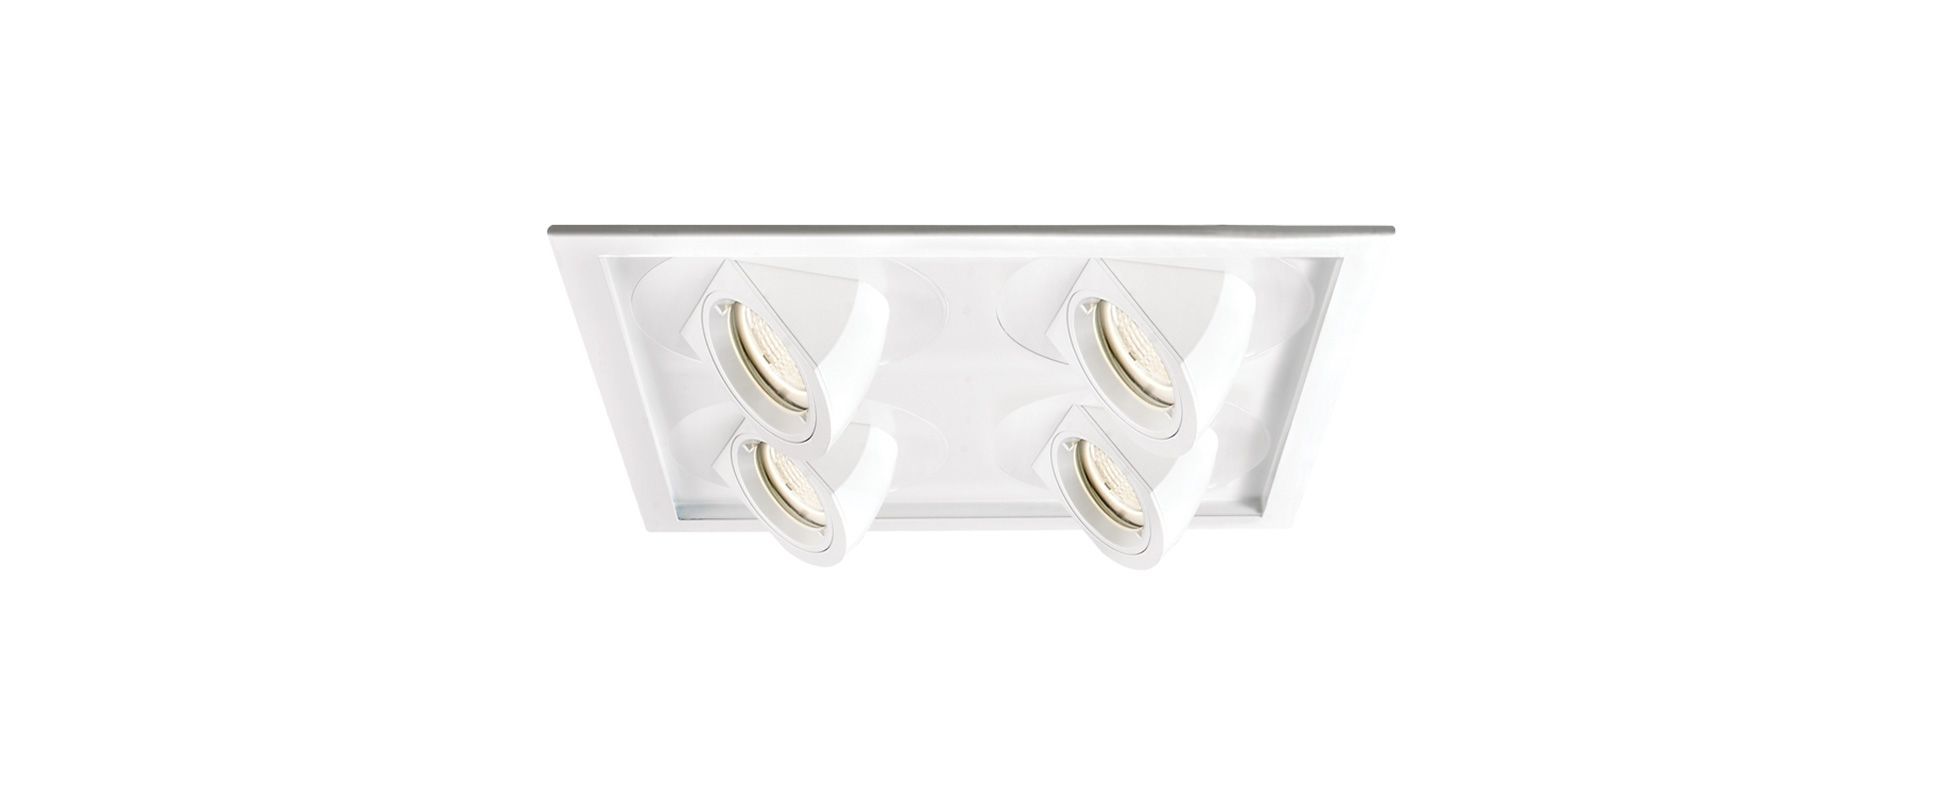 WAC Lighting MT-5LD445H Multiple Spot LED Recessed Light Housing for